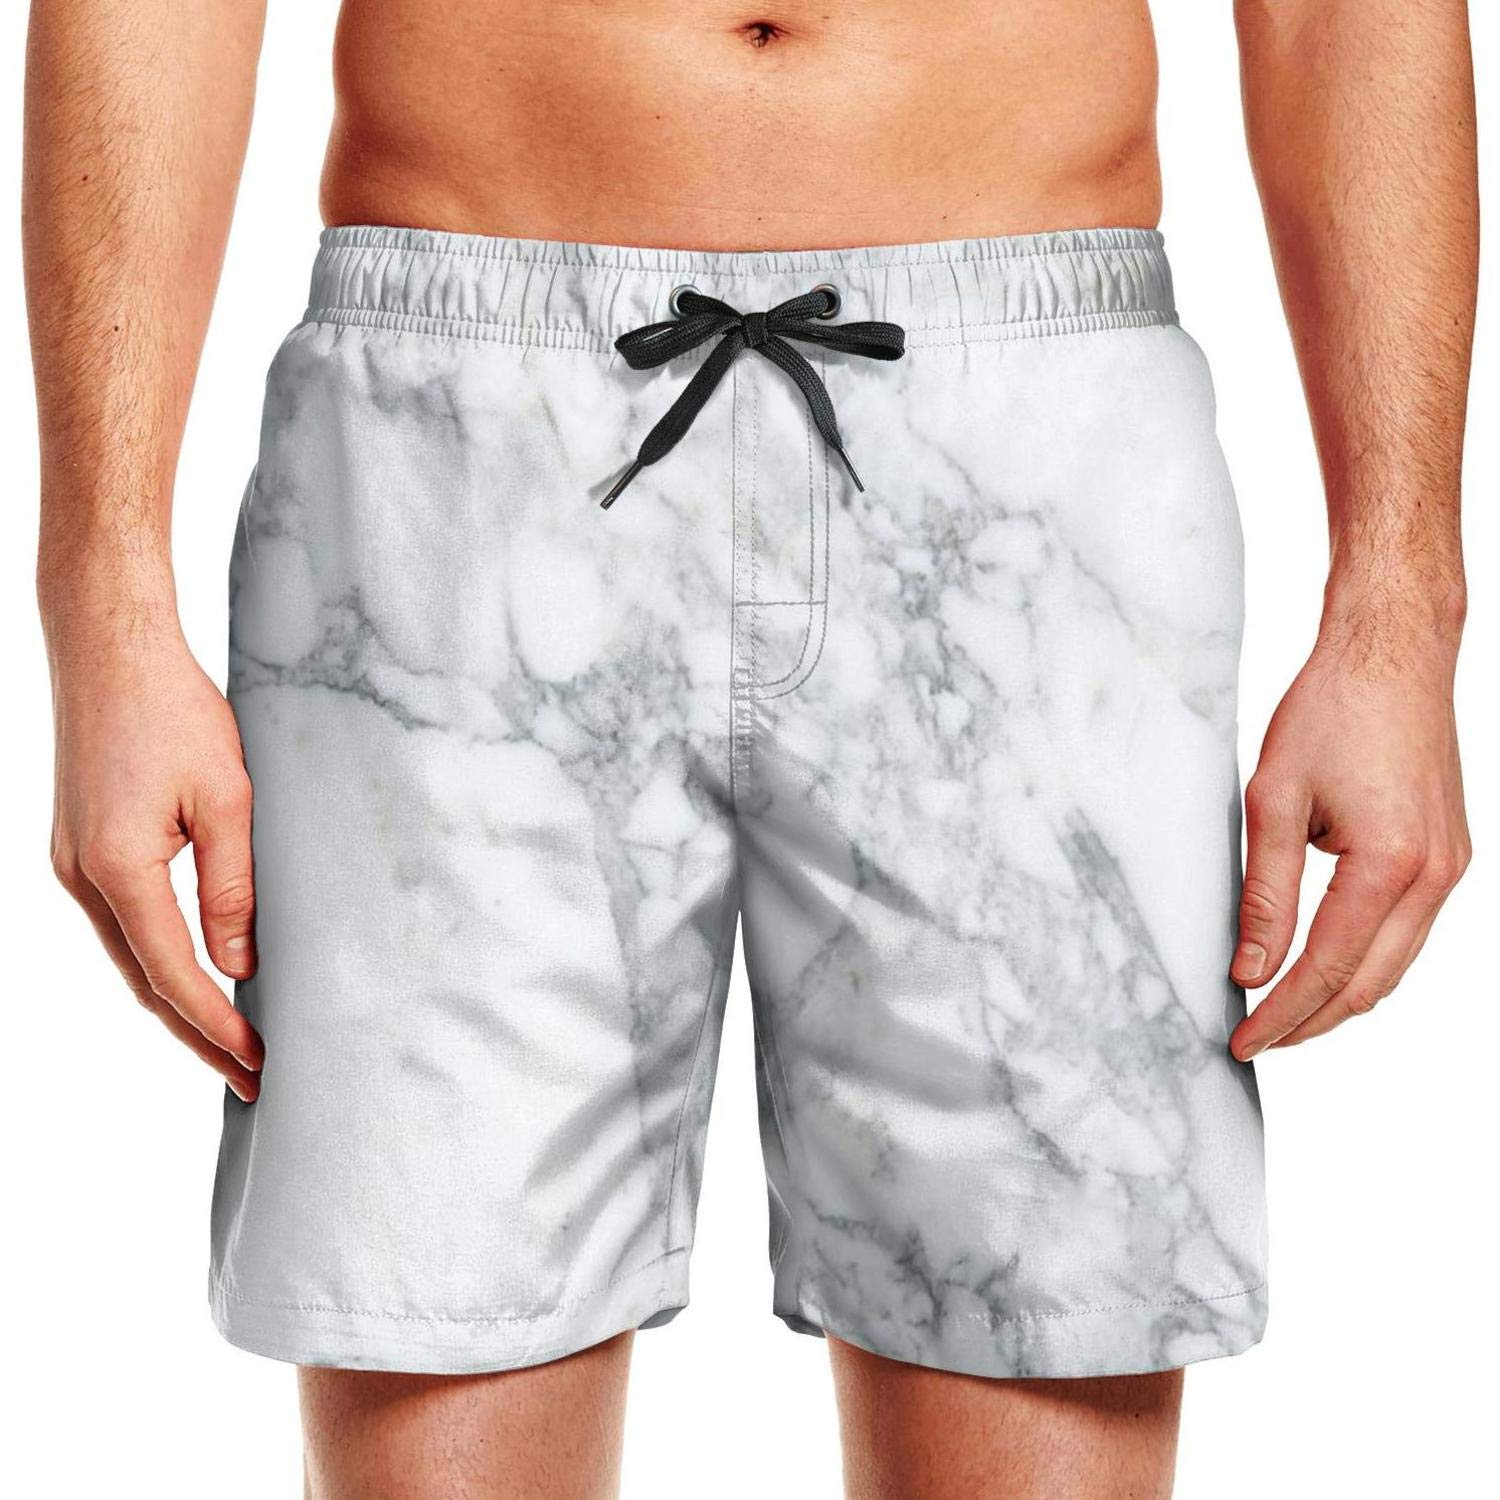 Mens Swim White Marble Rock Ruched Brief Adjustable Workout Shorts